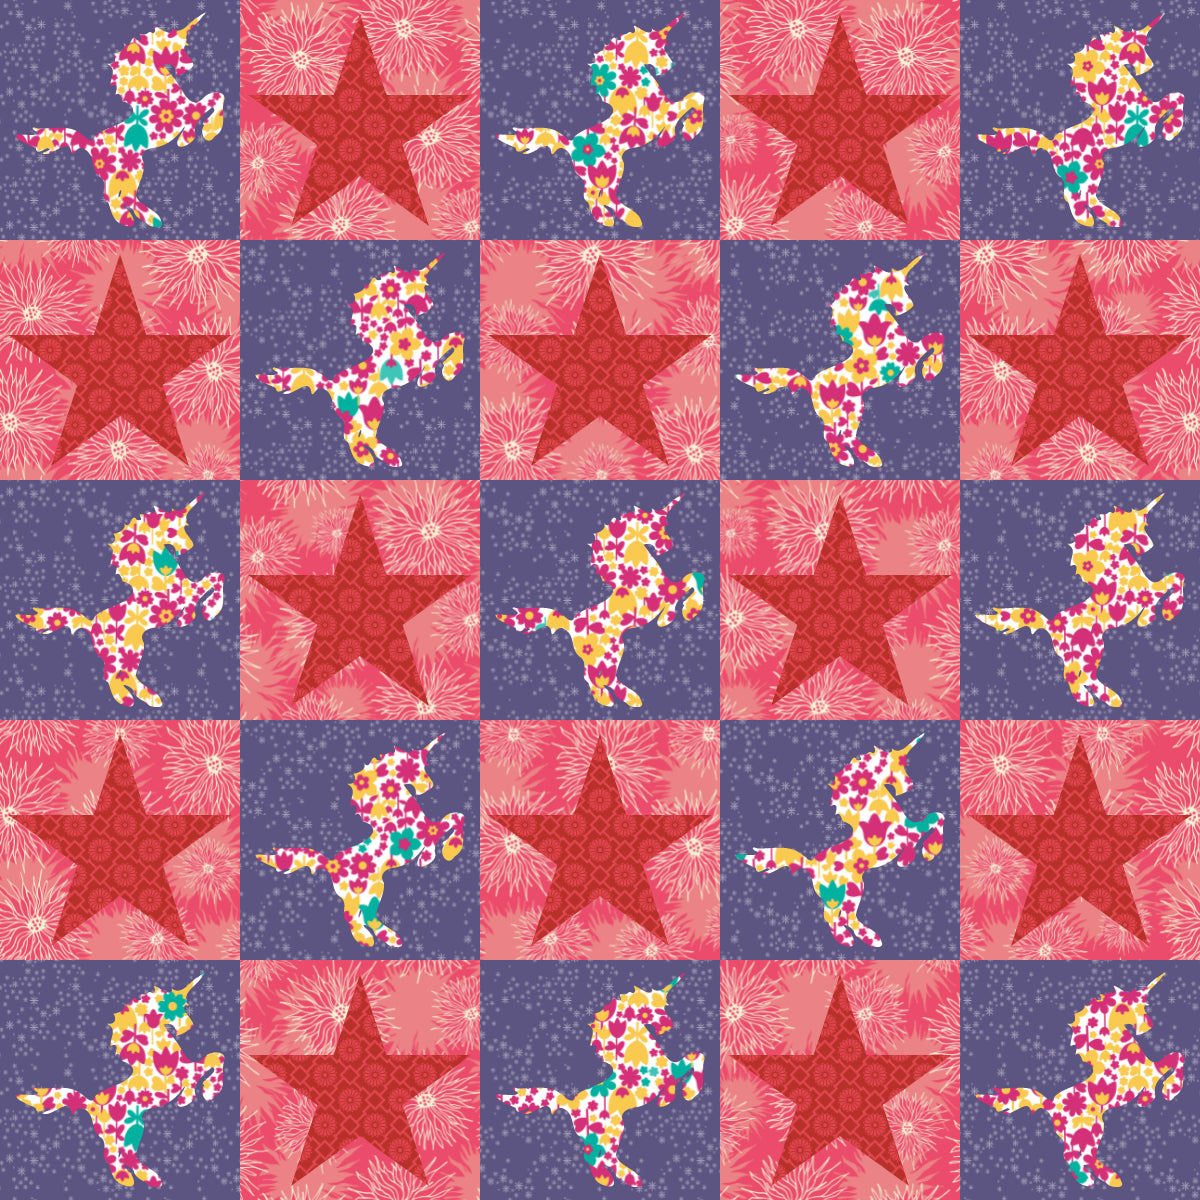 Unicorn - 36 x 36 Ready-To-Quilt Fabric Panel